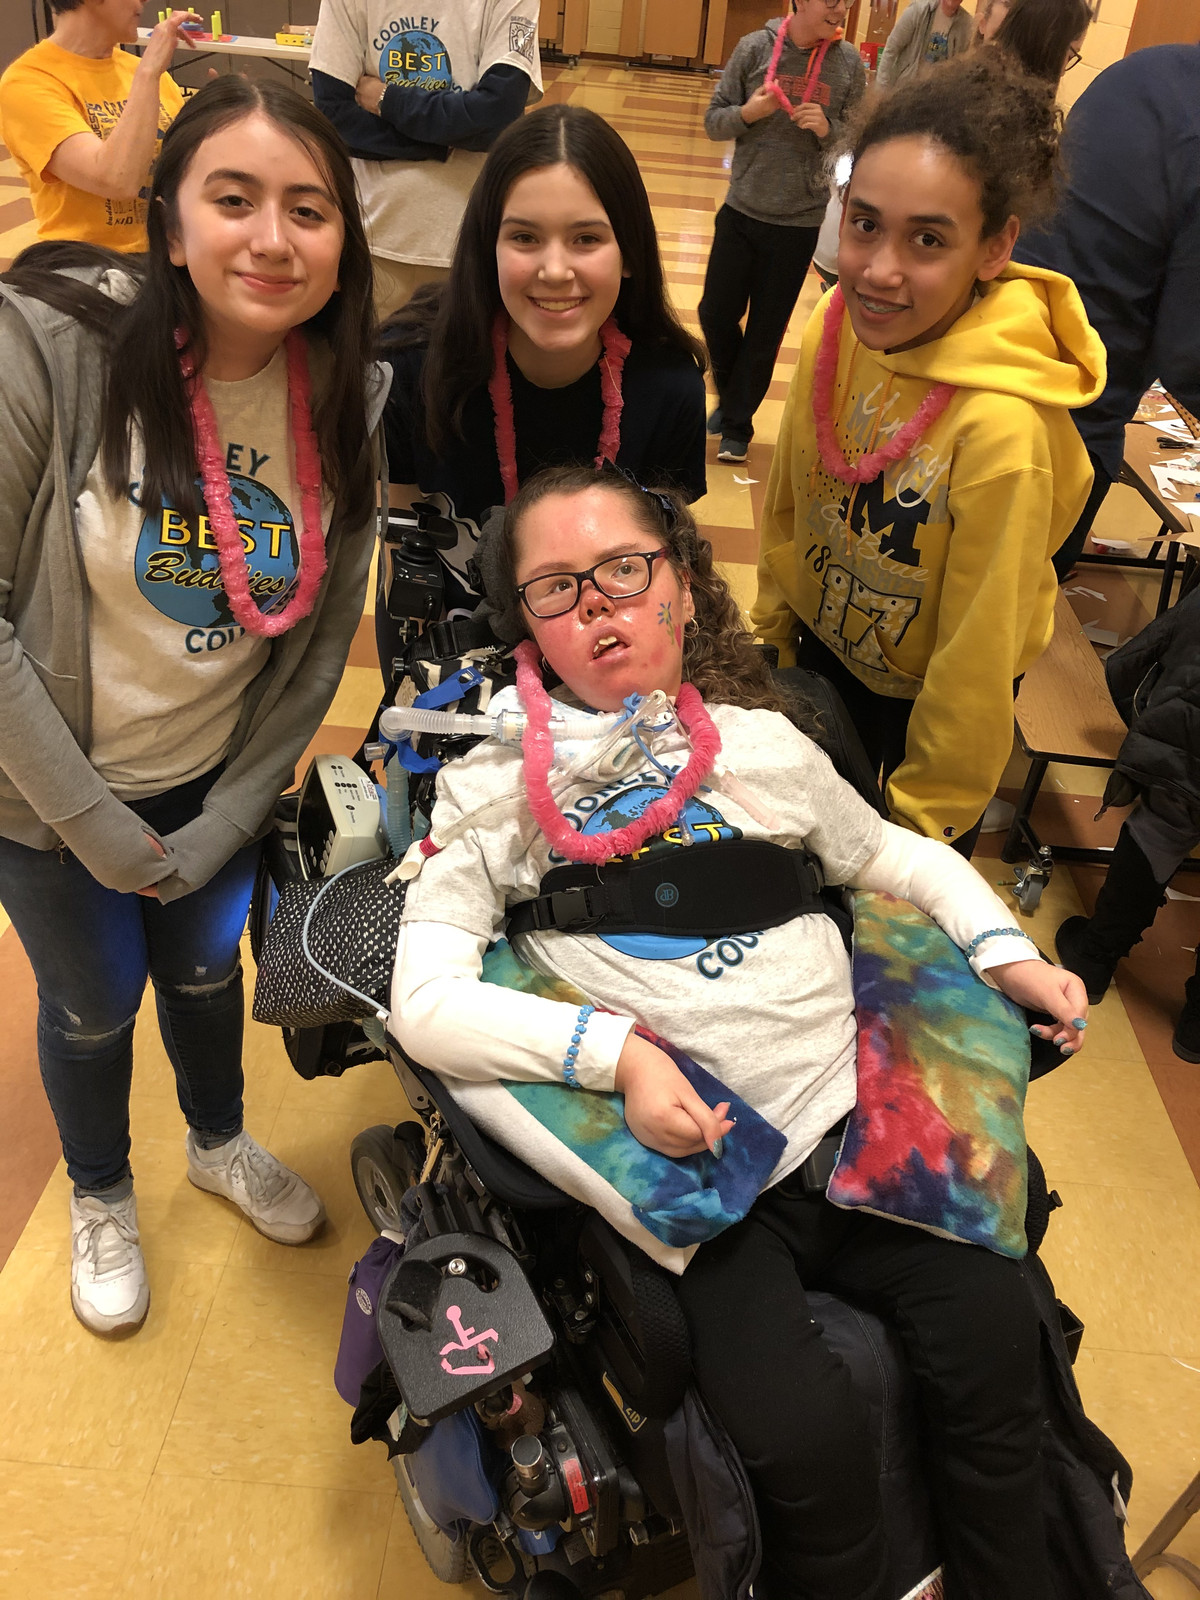 Ally Krajewski with her friends at a game night before schools were closed. Her mom says she misses her friends and her routine.